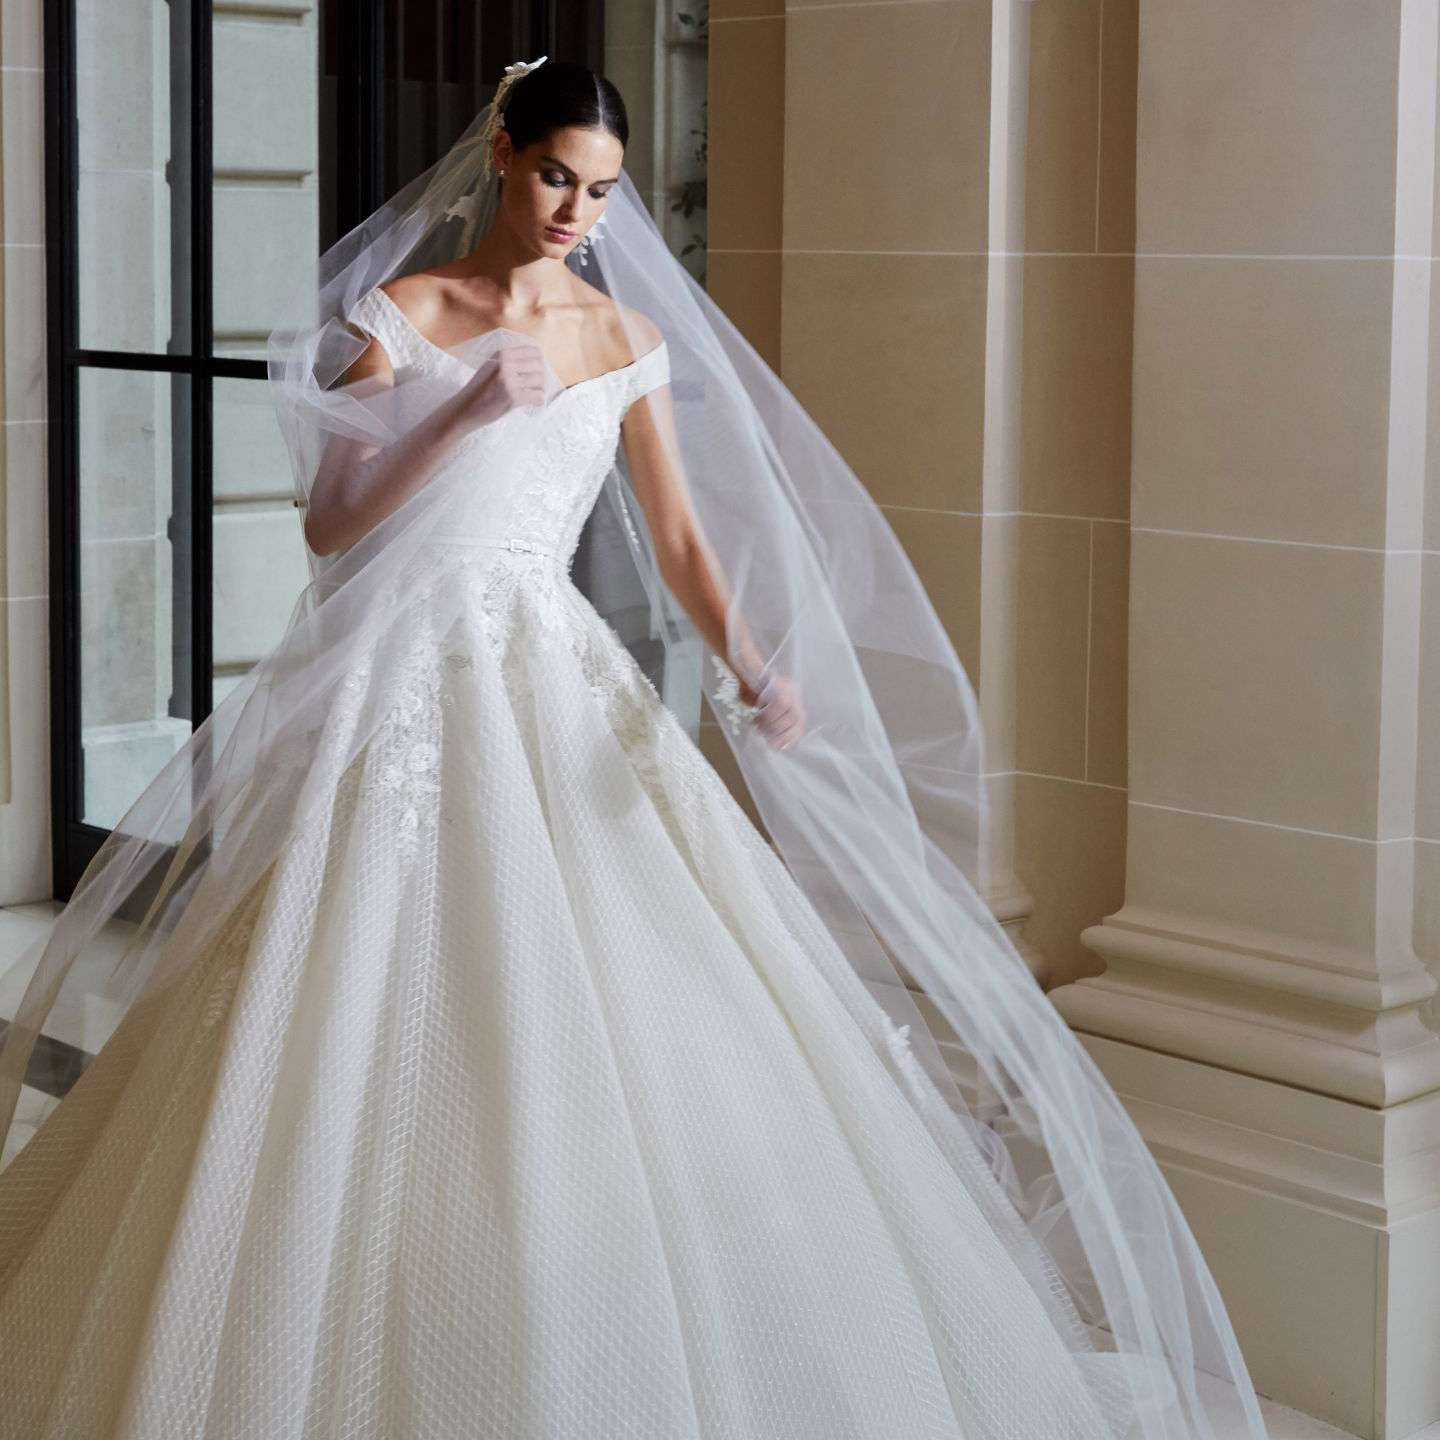 Model in off-the-shoulder netted tulle ball gown with floral embroidery